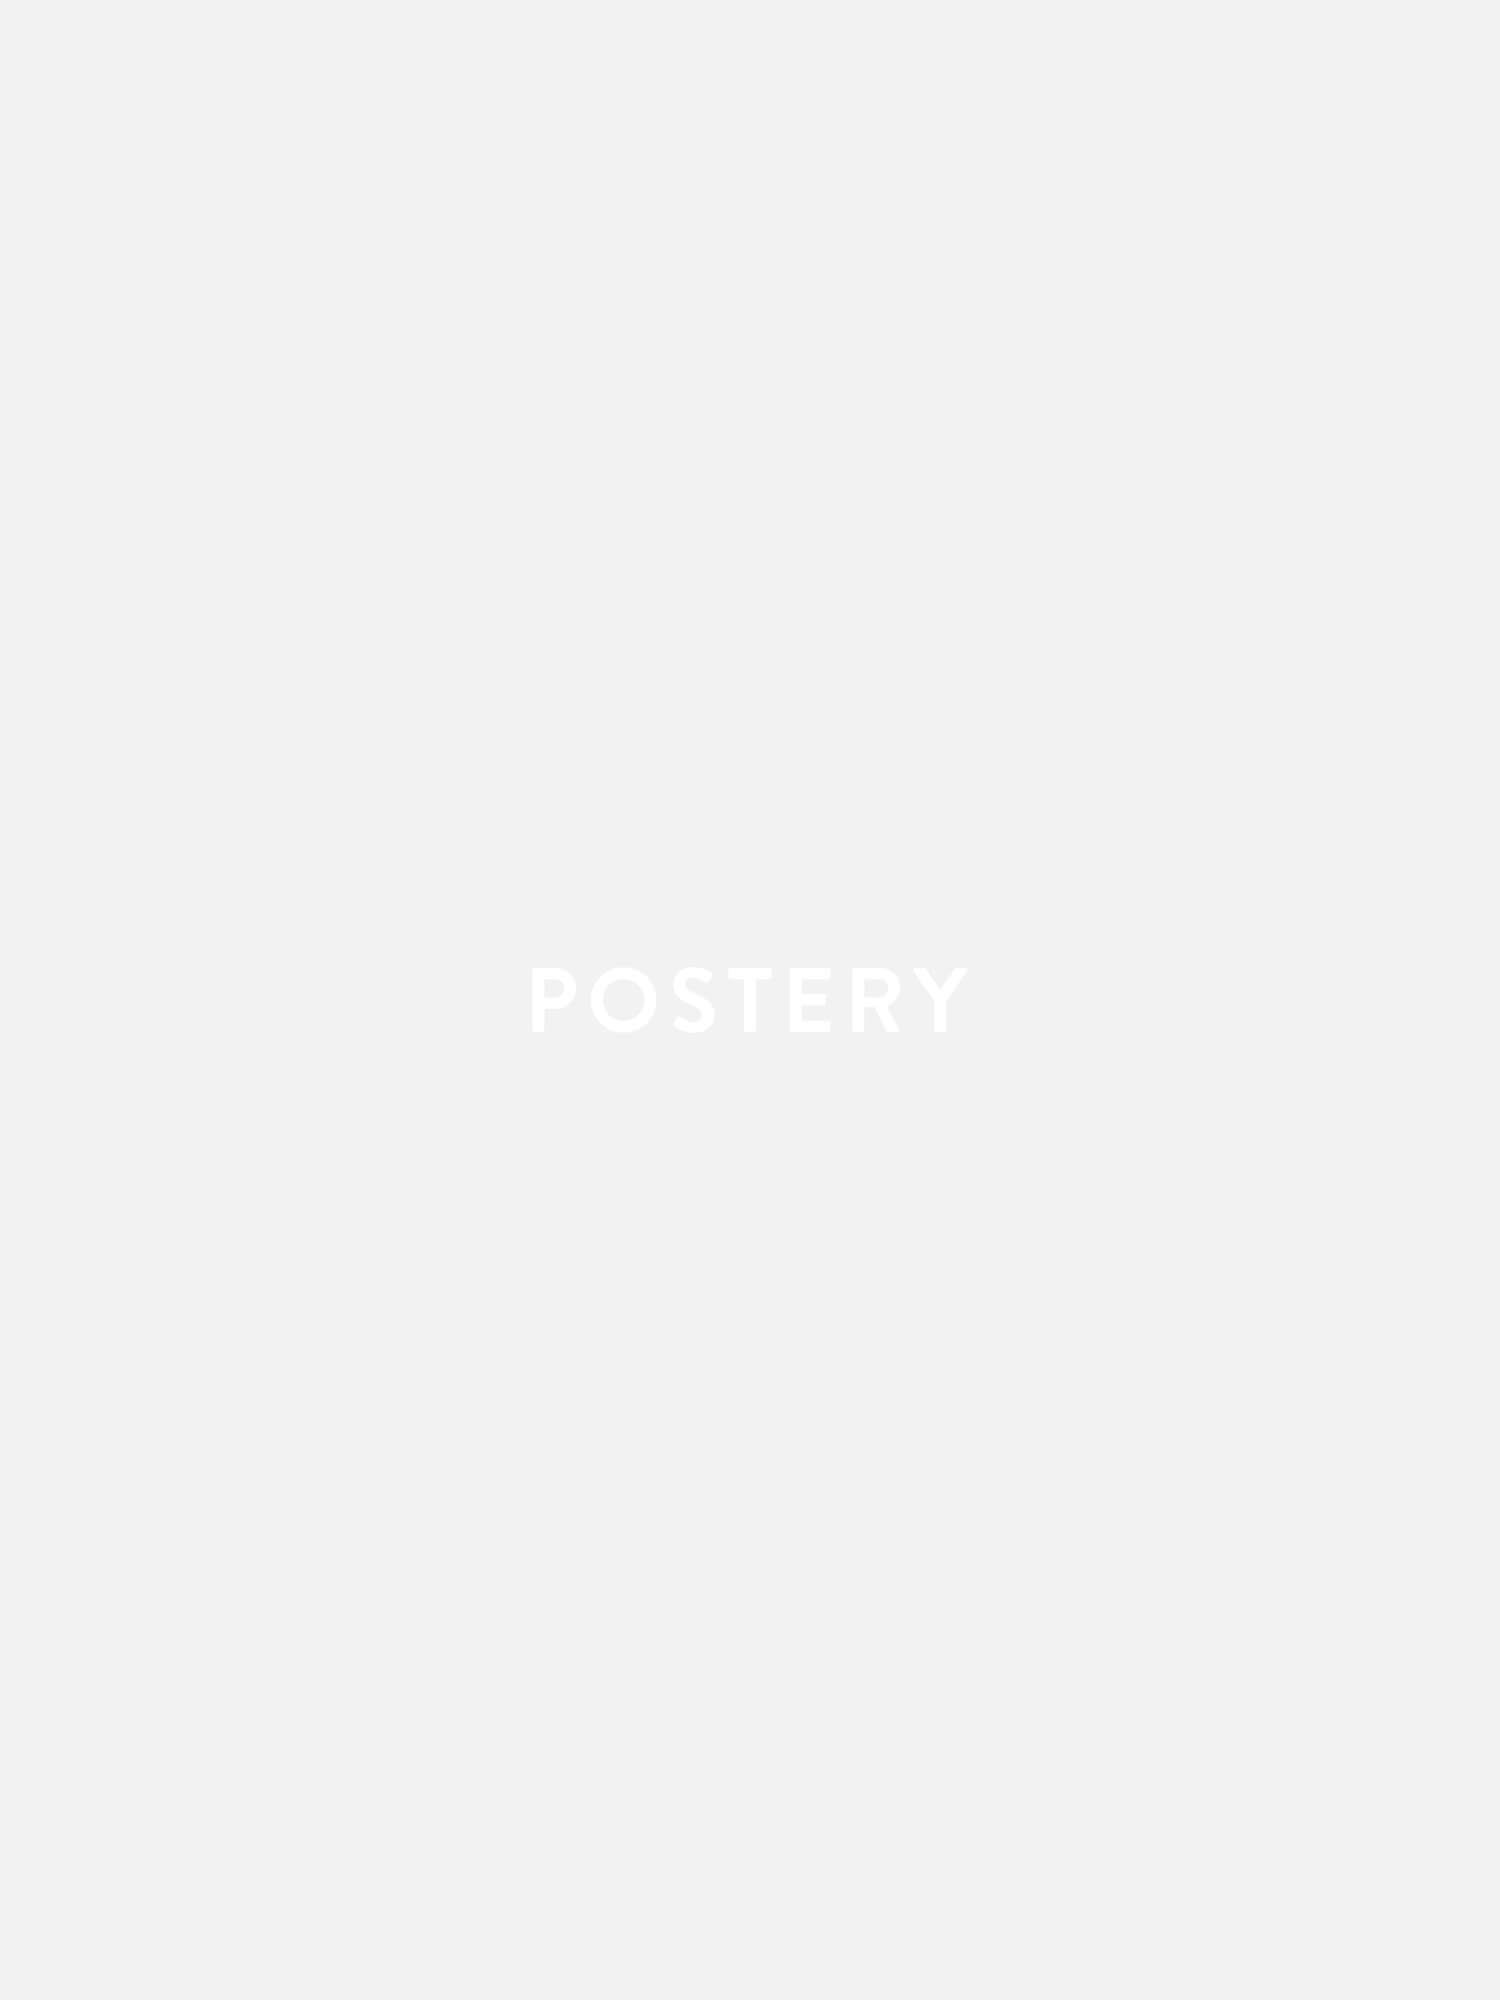 Yellow School Bus Poster